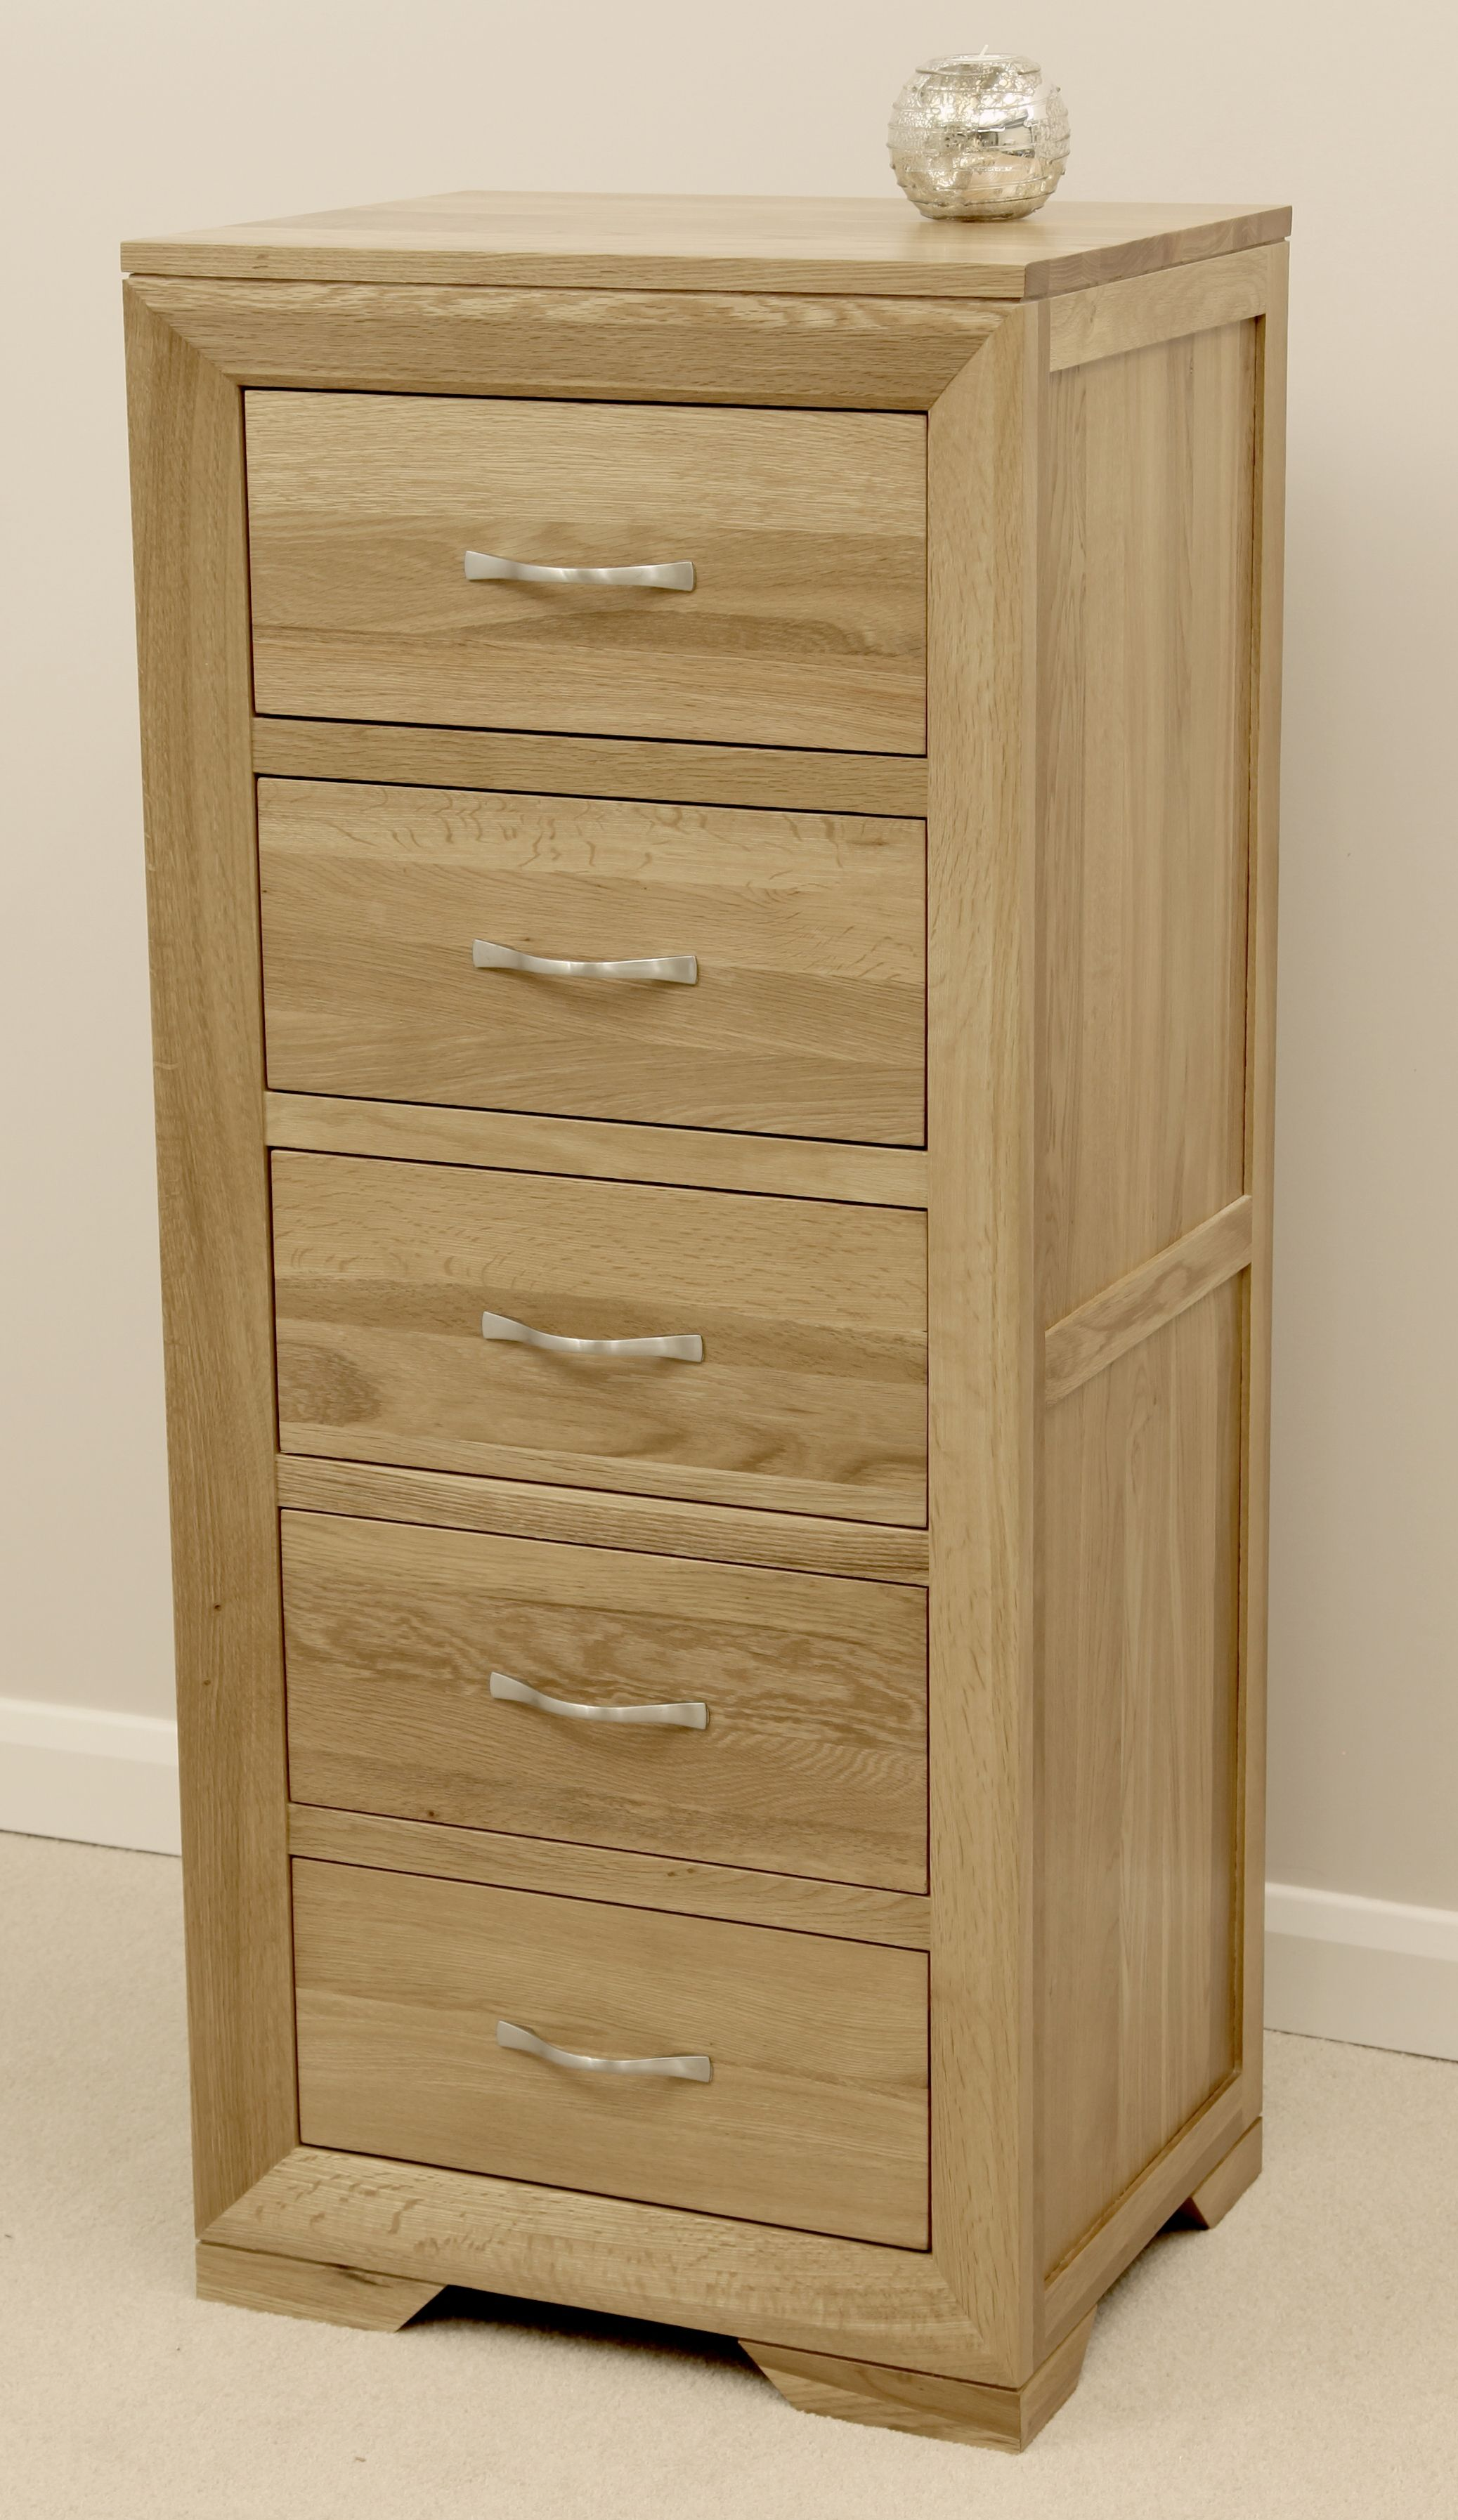 Bevel Solid Oak Range -  Tall Chest - Oak Furniture Land www.oakfurnitureland.co.uk